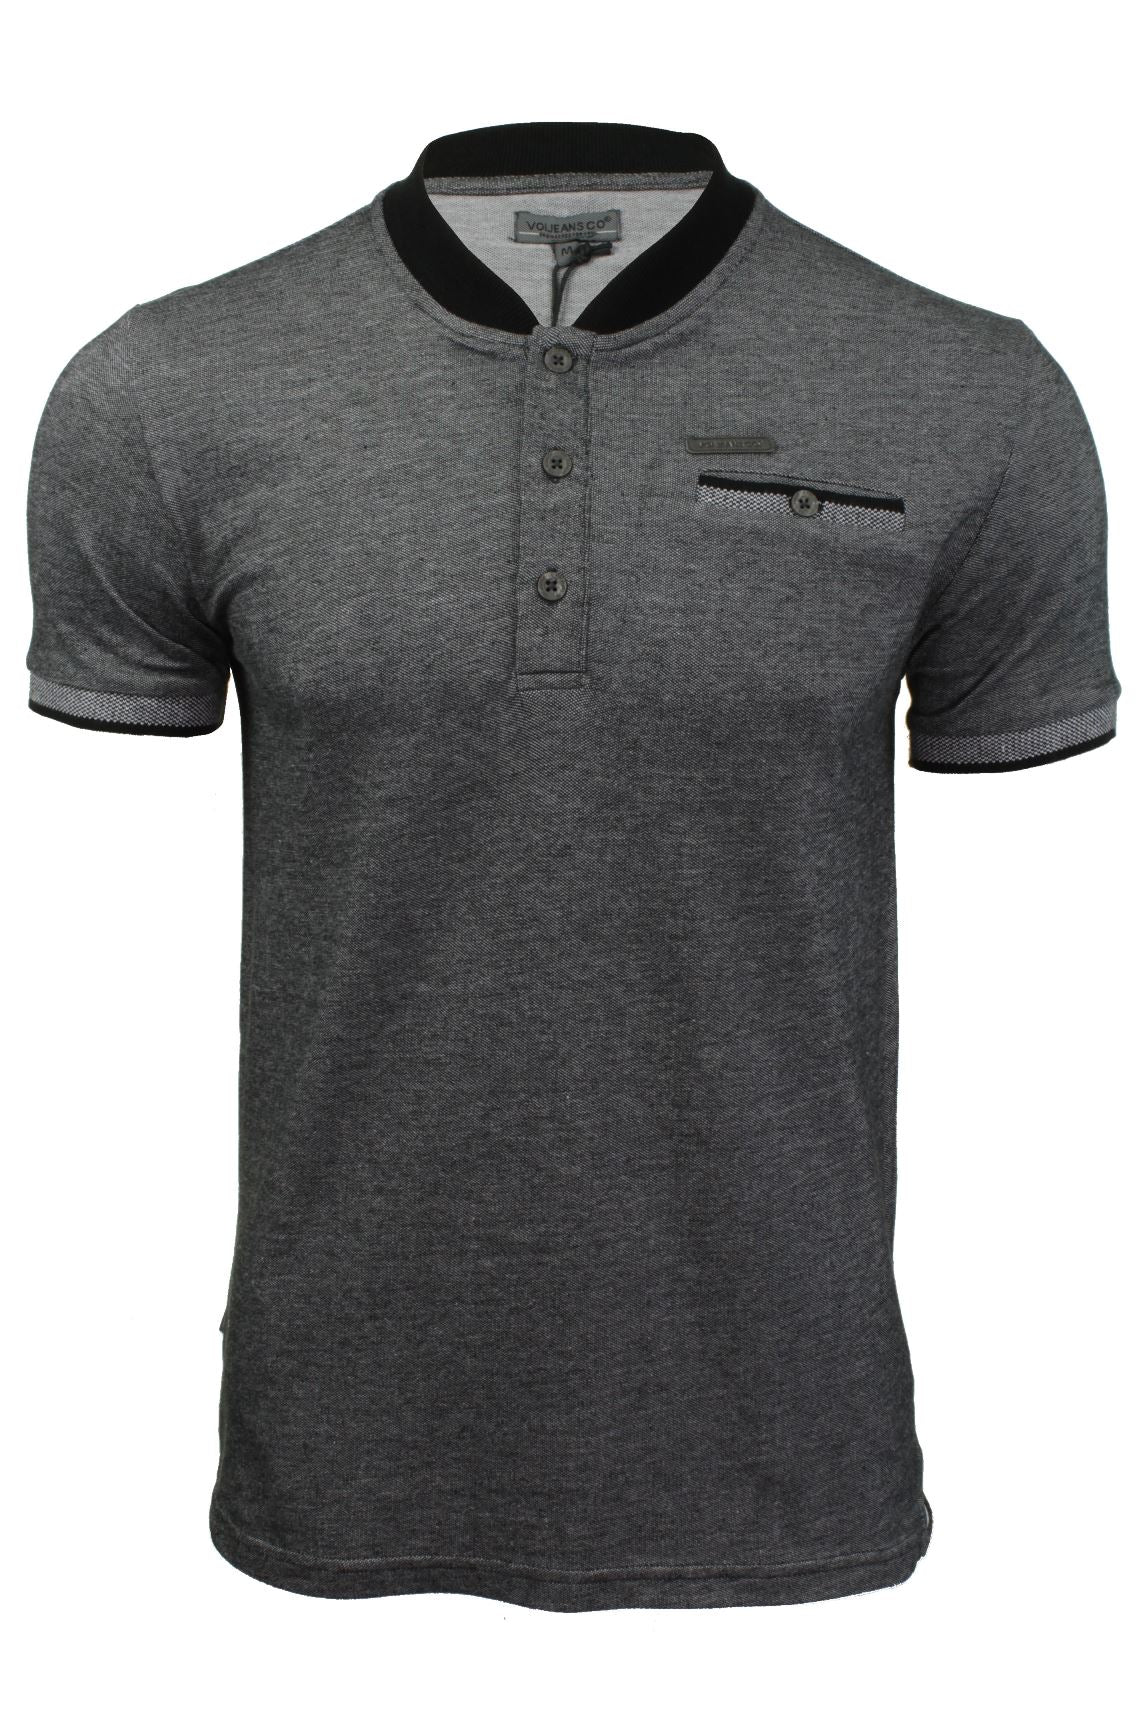 Mens Polo T-Shirt by Voi Jeans 'Lutz'-2